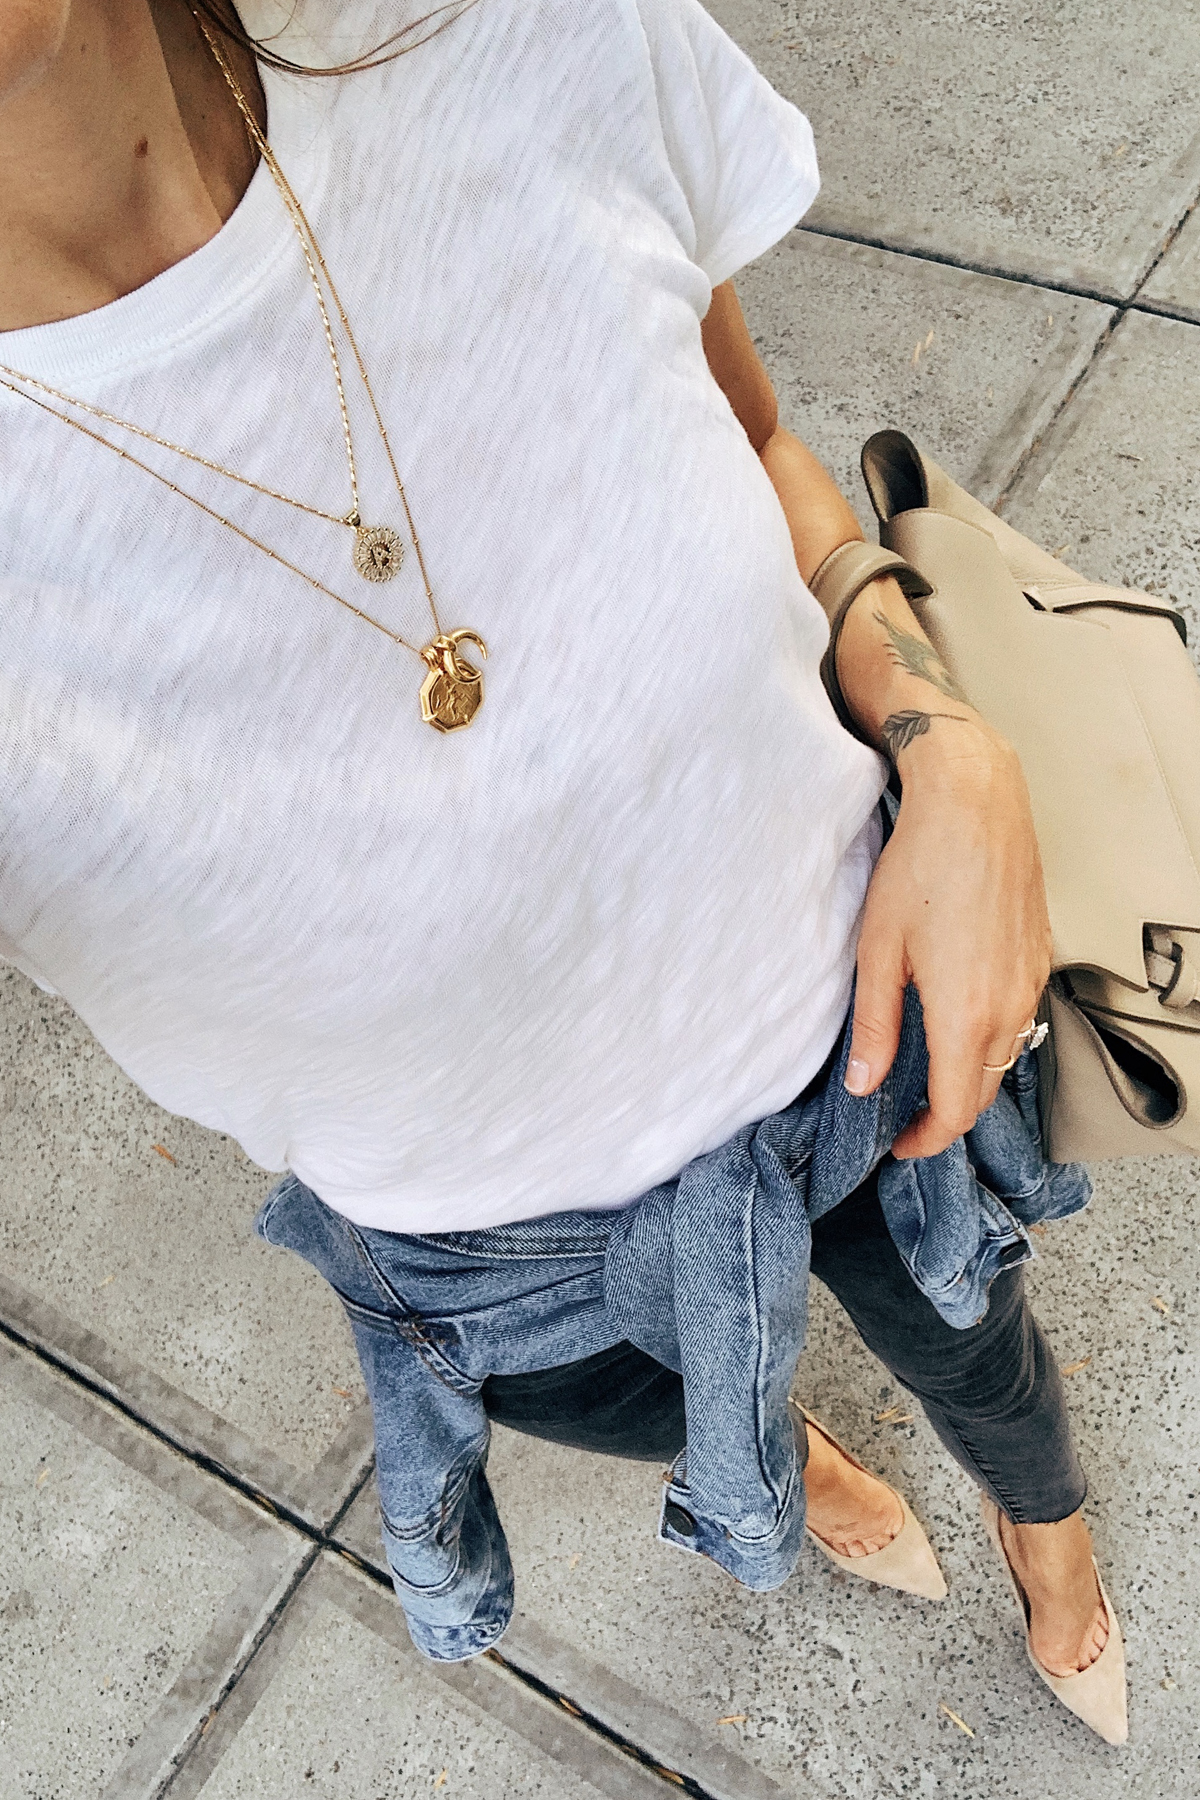 ATM White Tshirt Denmim Jacket Black Skinny Jeans Gold Layered Necklaces